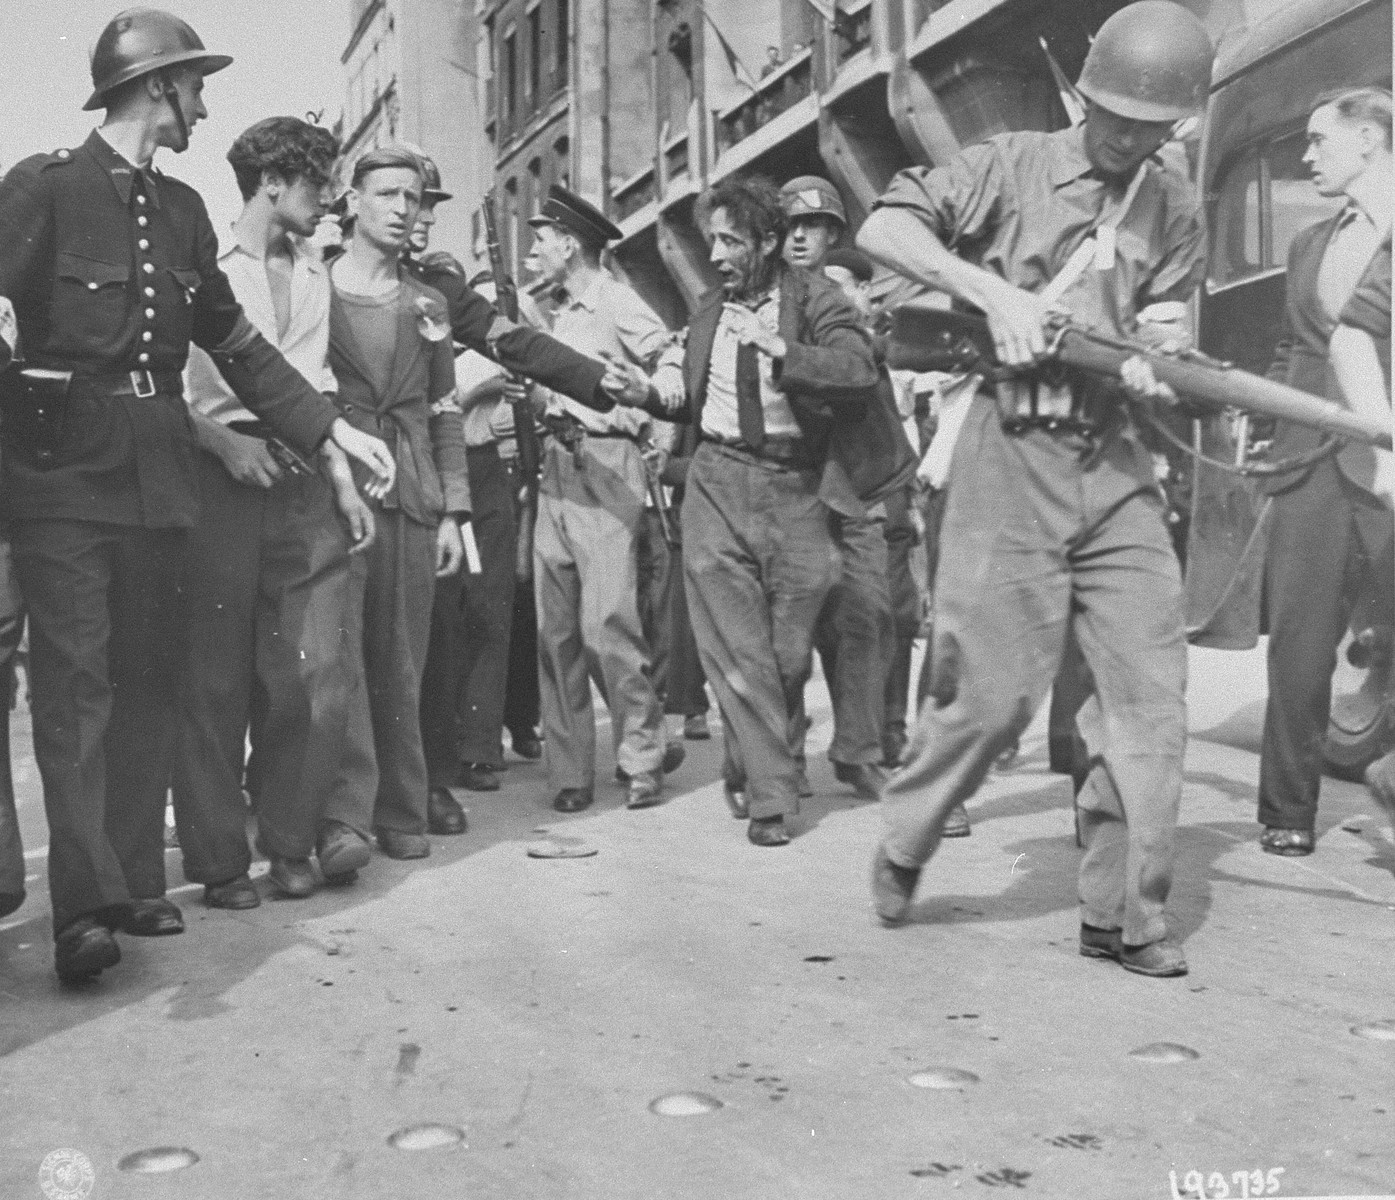 Members of the French resistance lead a wounded collaborator away from a crowd after he was beaten in the street on the day Paris was liberated.